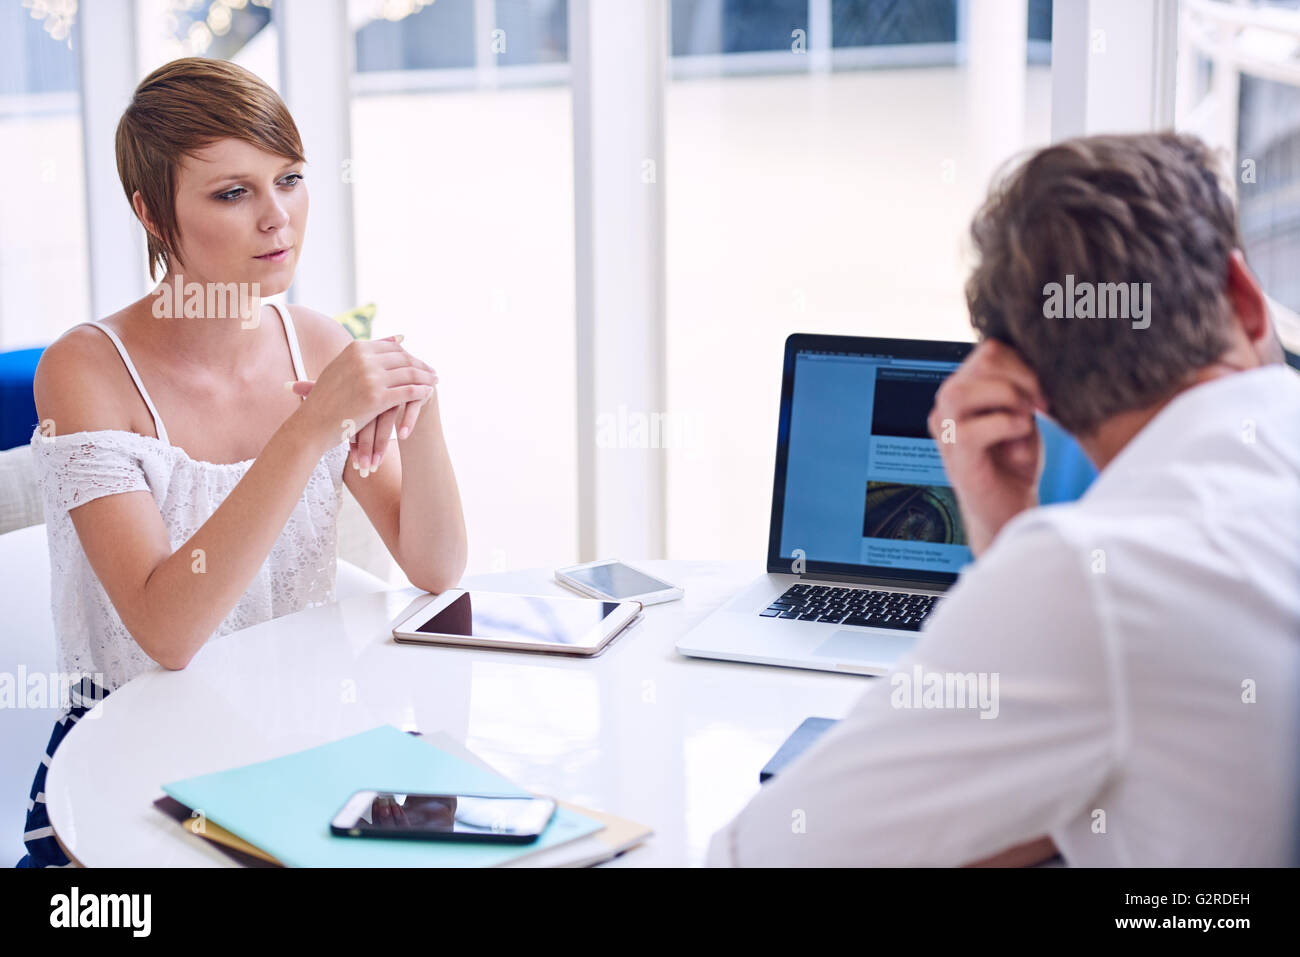 Apparent disagreement between male and female partners during business meeting Stock Photo